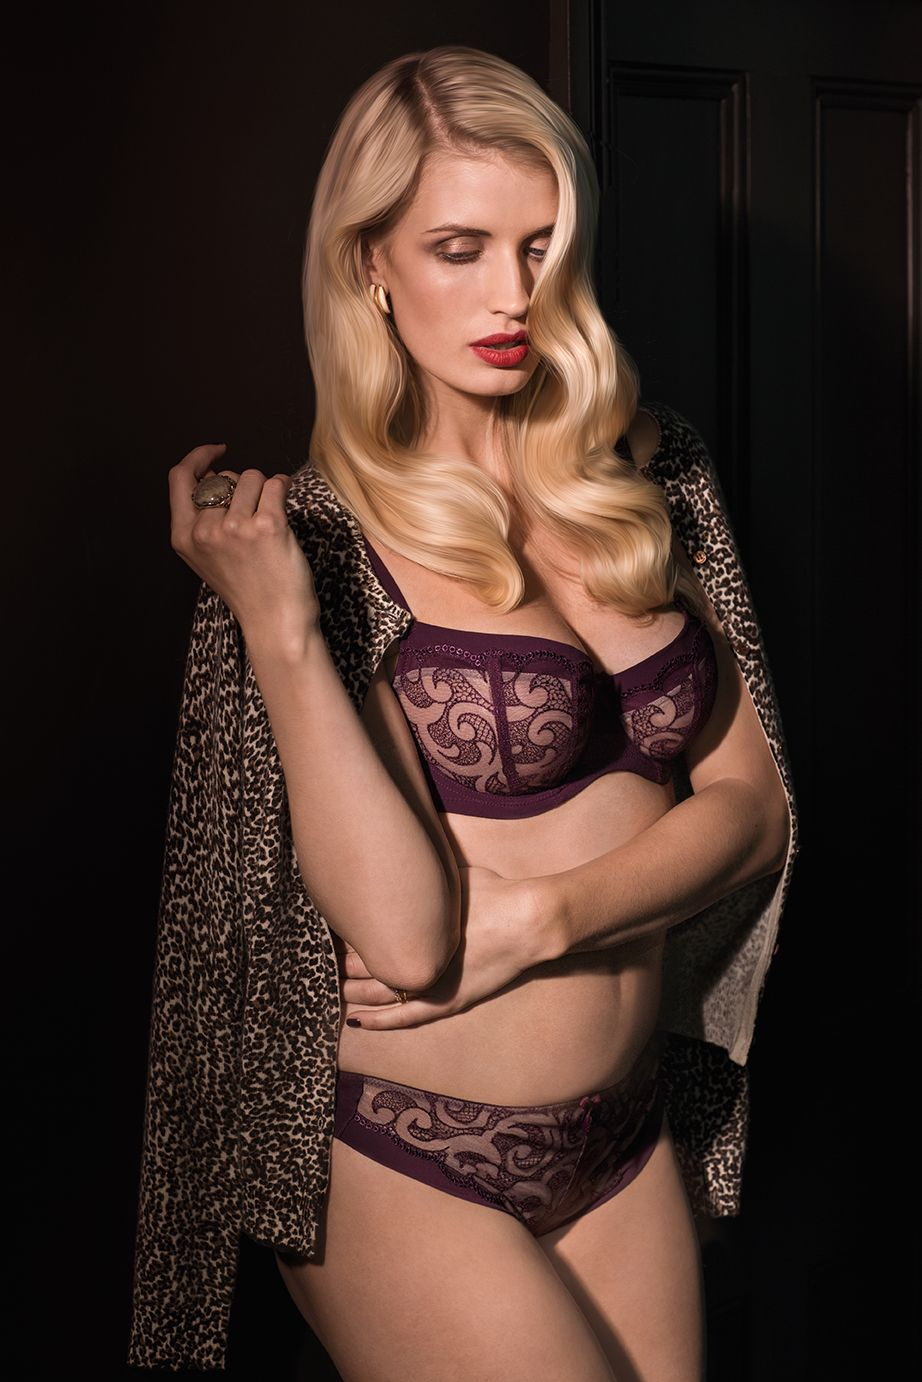 Orla by Panache is an elegant and sexy lace bra that s the perfect gift  this holiday season! Only  79 in store at Posh Lingerie or on  poshlingerie.net! 0750eff2c